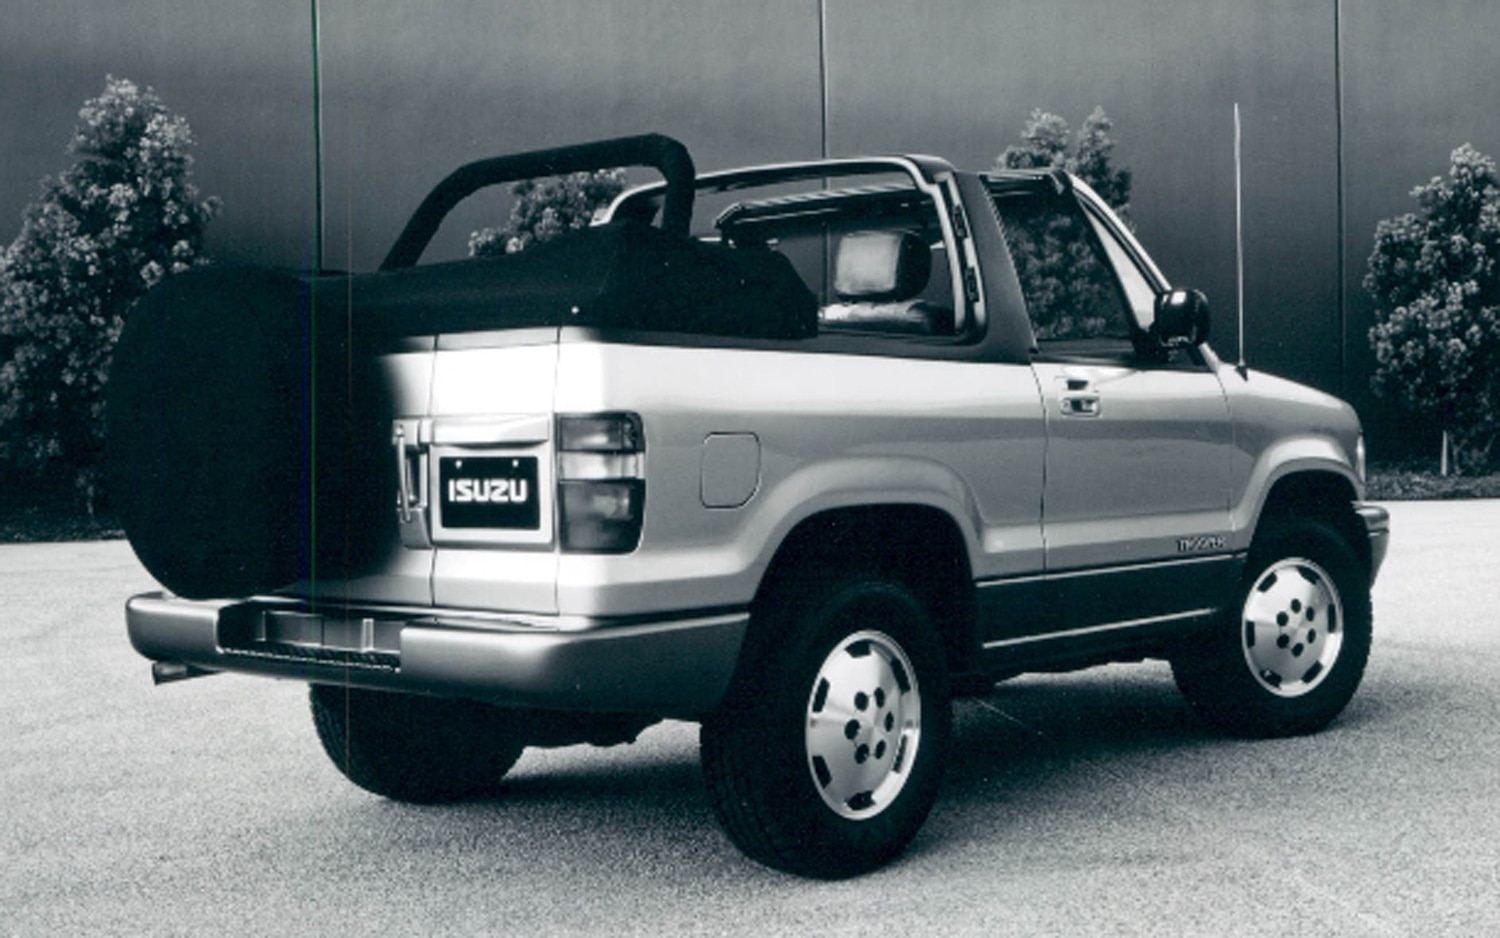 Friday S Forgotten Concepts Isuzu S Convertable Crossovers